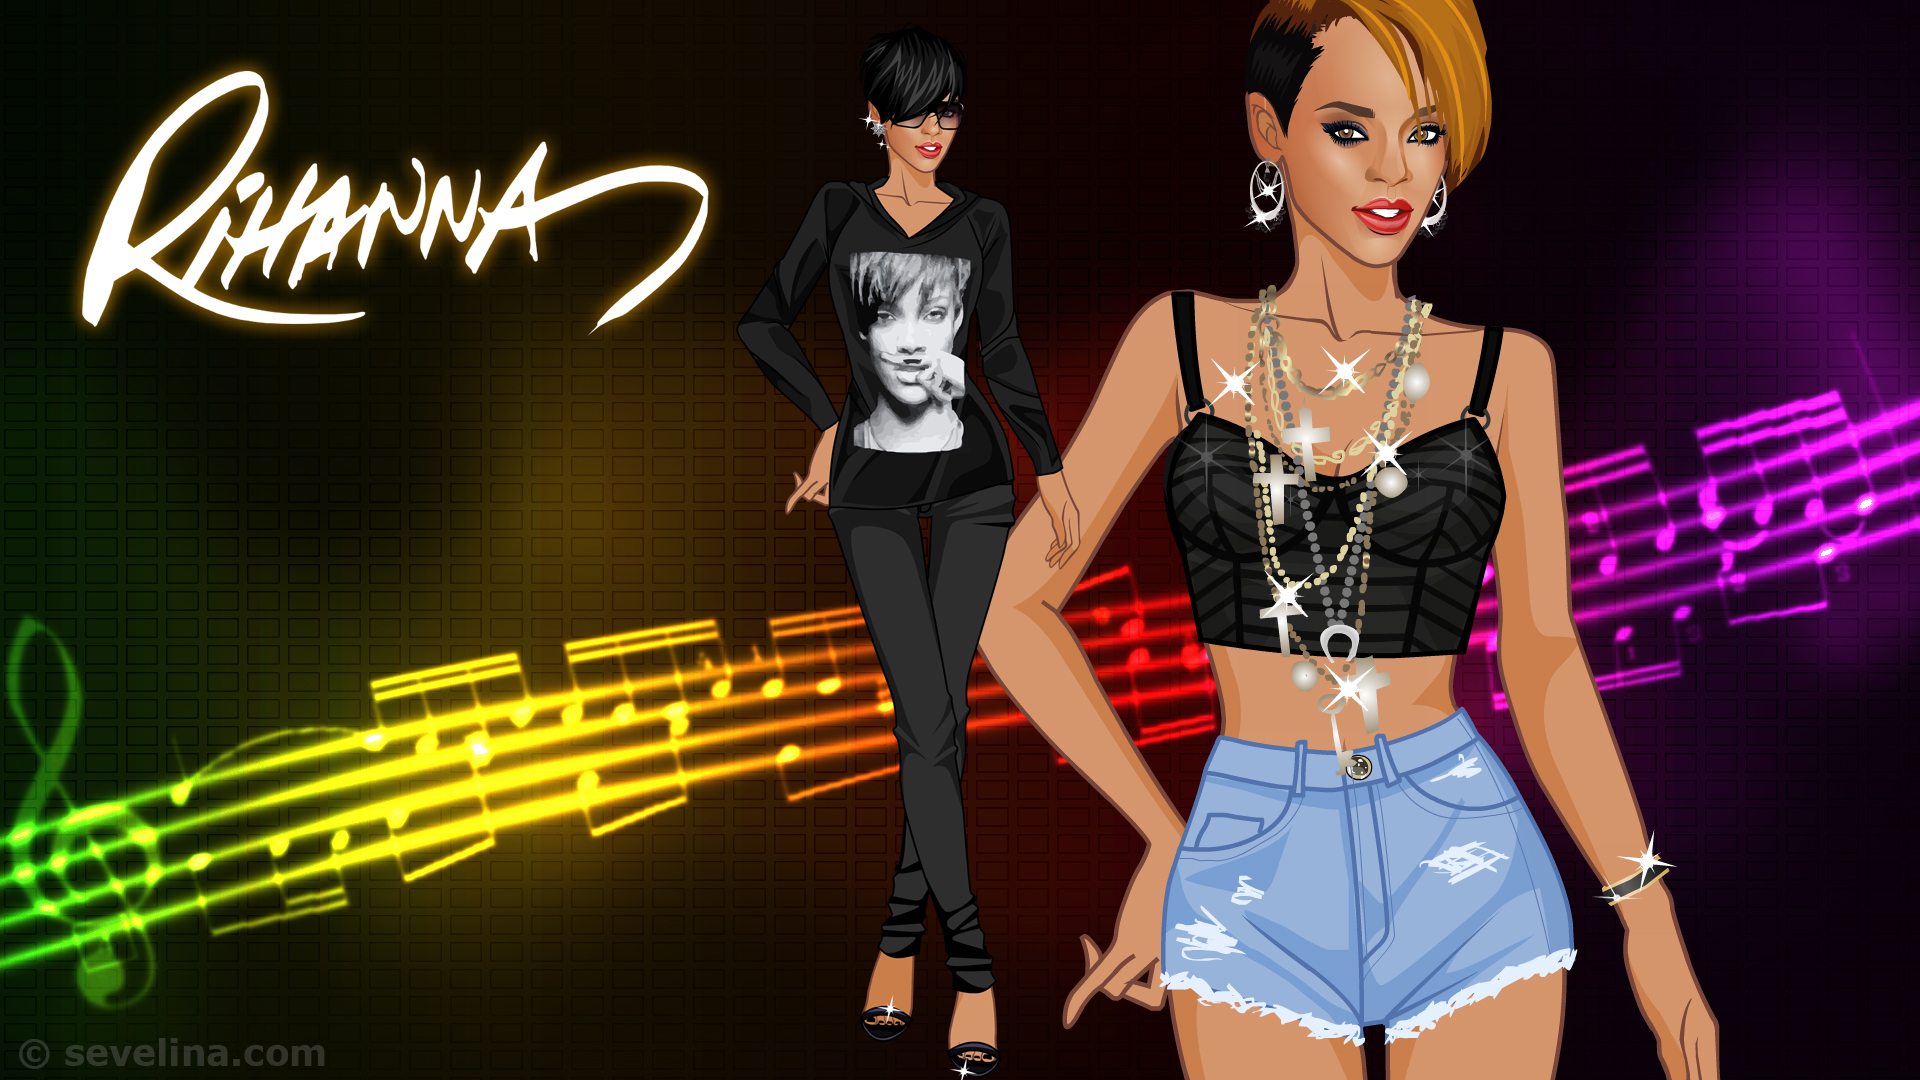 rihanna-wallpapers-2014-sevelina-dress-up-games-4